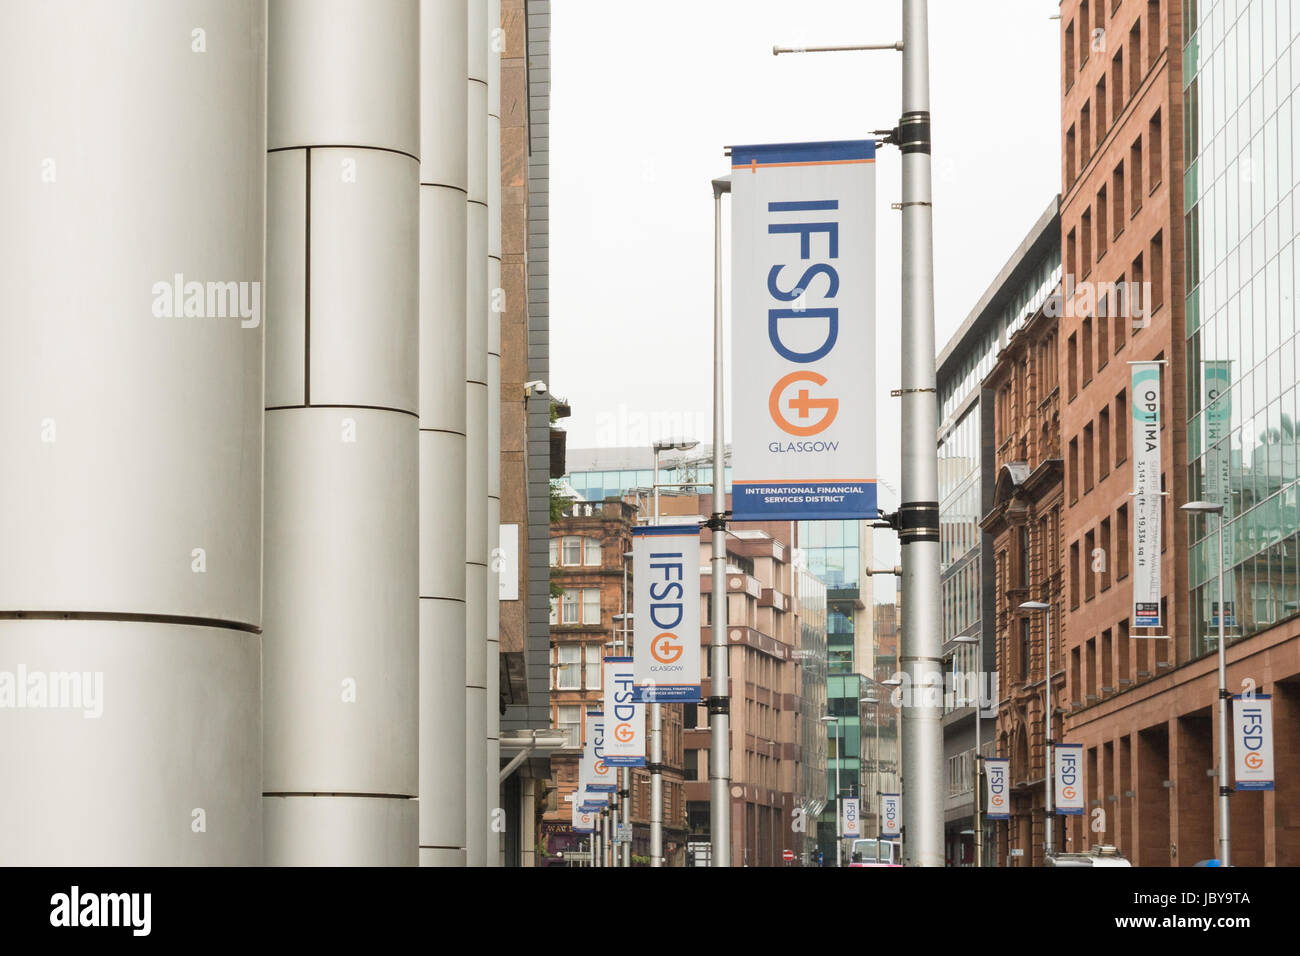 Glasgow International Financial Services District - IFSD - Zeichen, Glasgow, Schottland, UK Stockbild